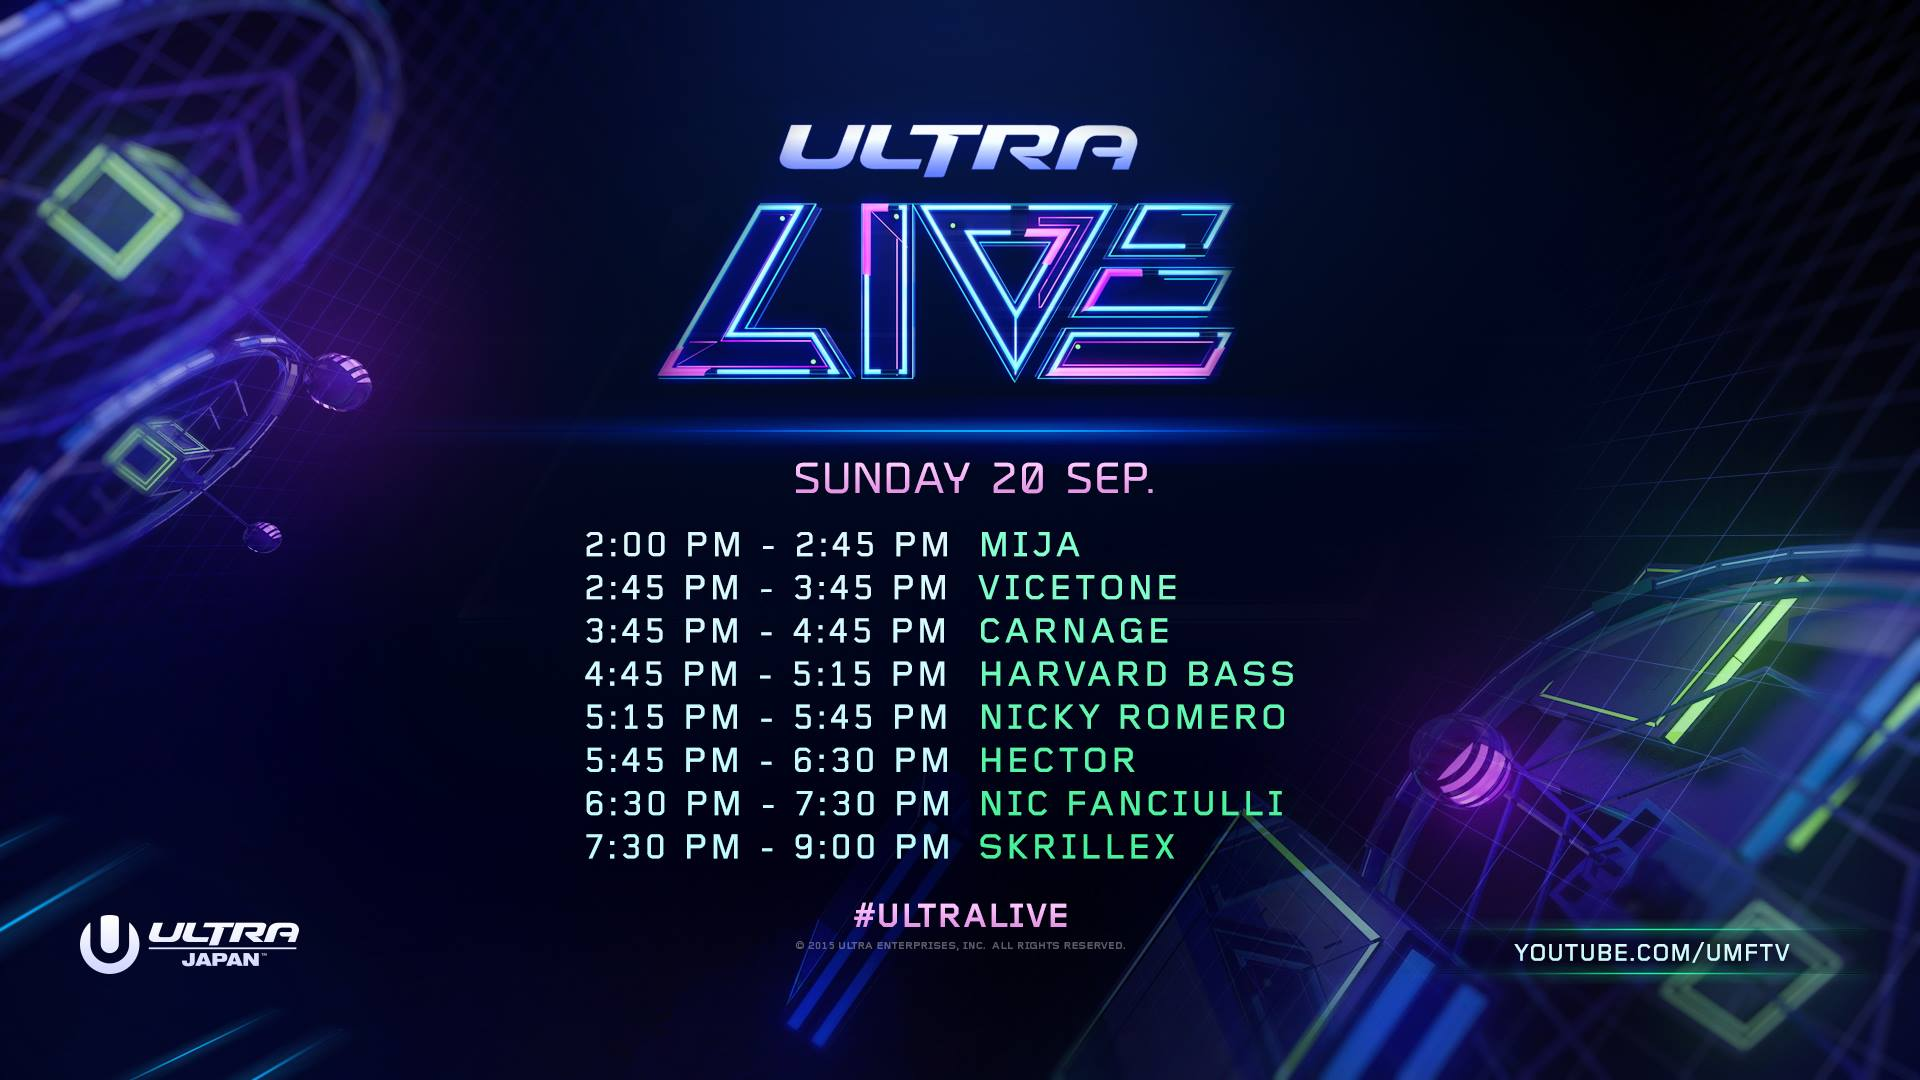 download → Nic Fanciulli, Skrillex, Hector, Harvard Bass, Nicky Romero, Carnage, Vicetone, Mija - Ultra Music Festival 2015, Japan - 1080p HD - 20-Sep-2015